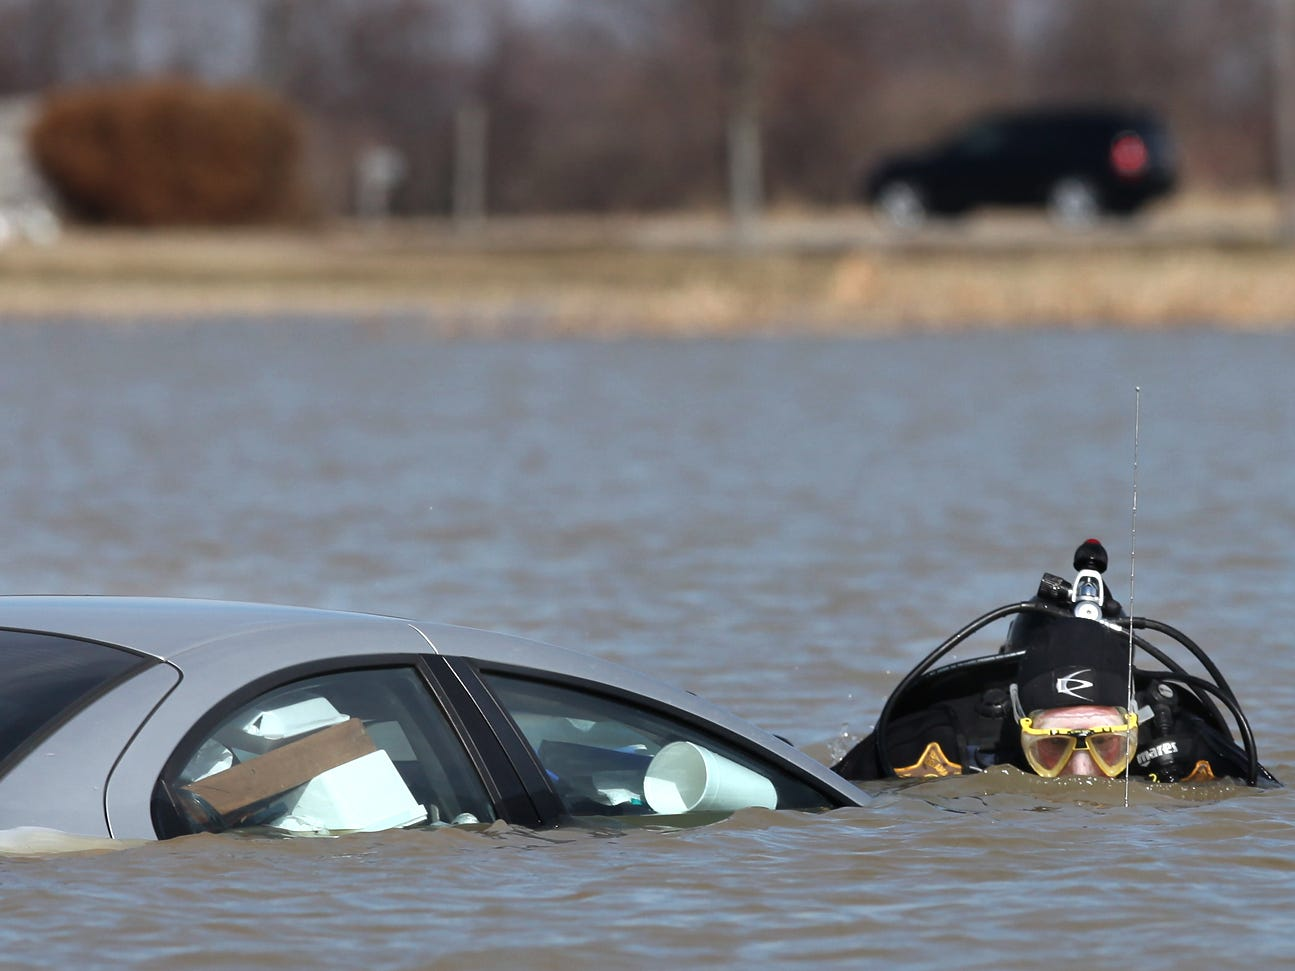 FROM 2011: George Sheridan of the Delaware County Sheriff's Department's dive team investigates a Dodge Neon largely submerged in overflowing wetlands at Ind. 28 and Delaware County Road 400-W.